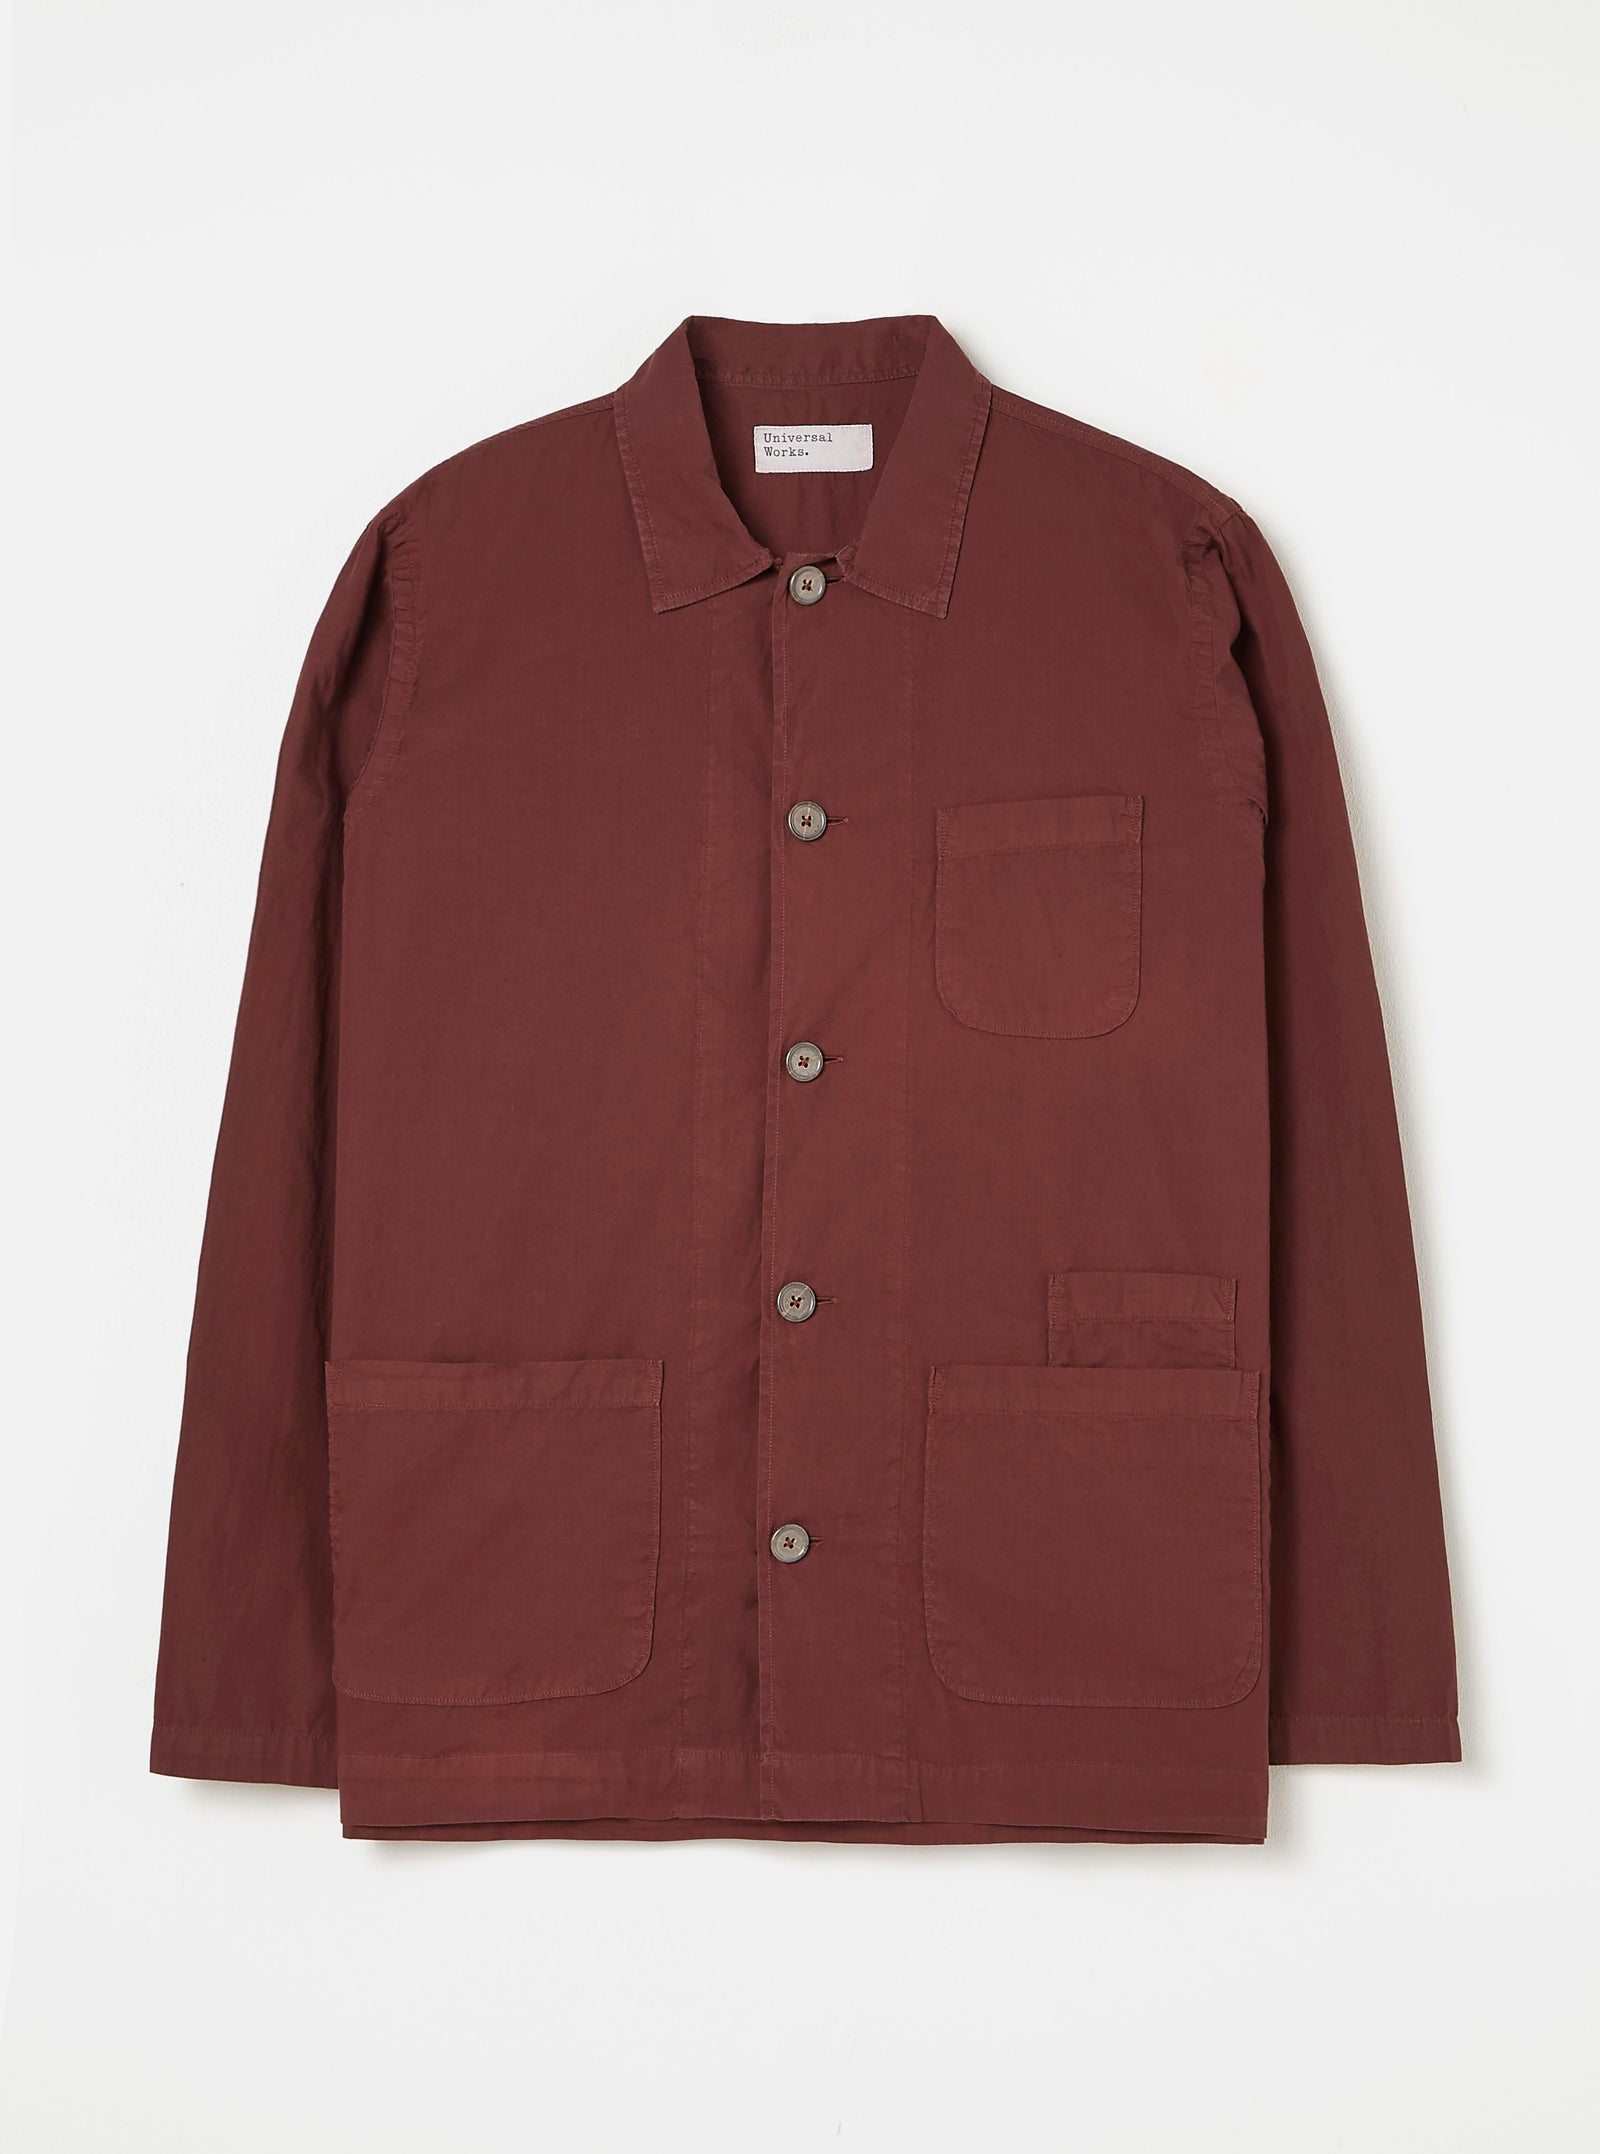 Universal Works Bakers Overshirt in Raisin Poplin